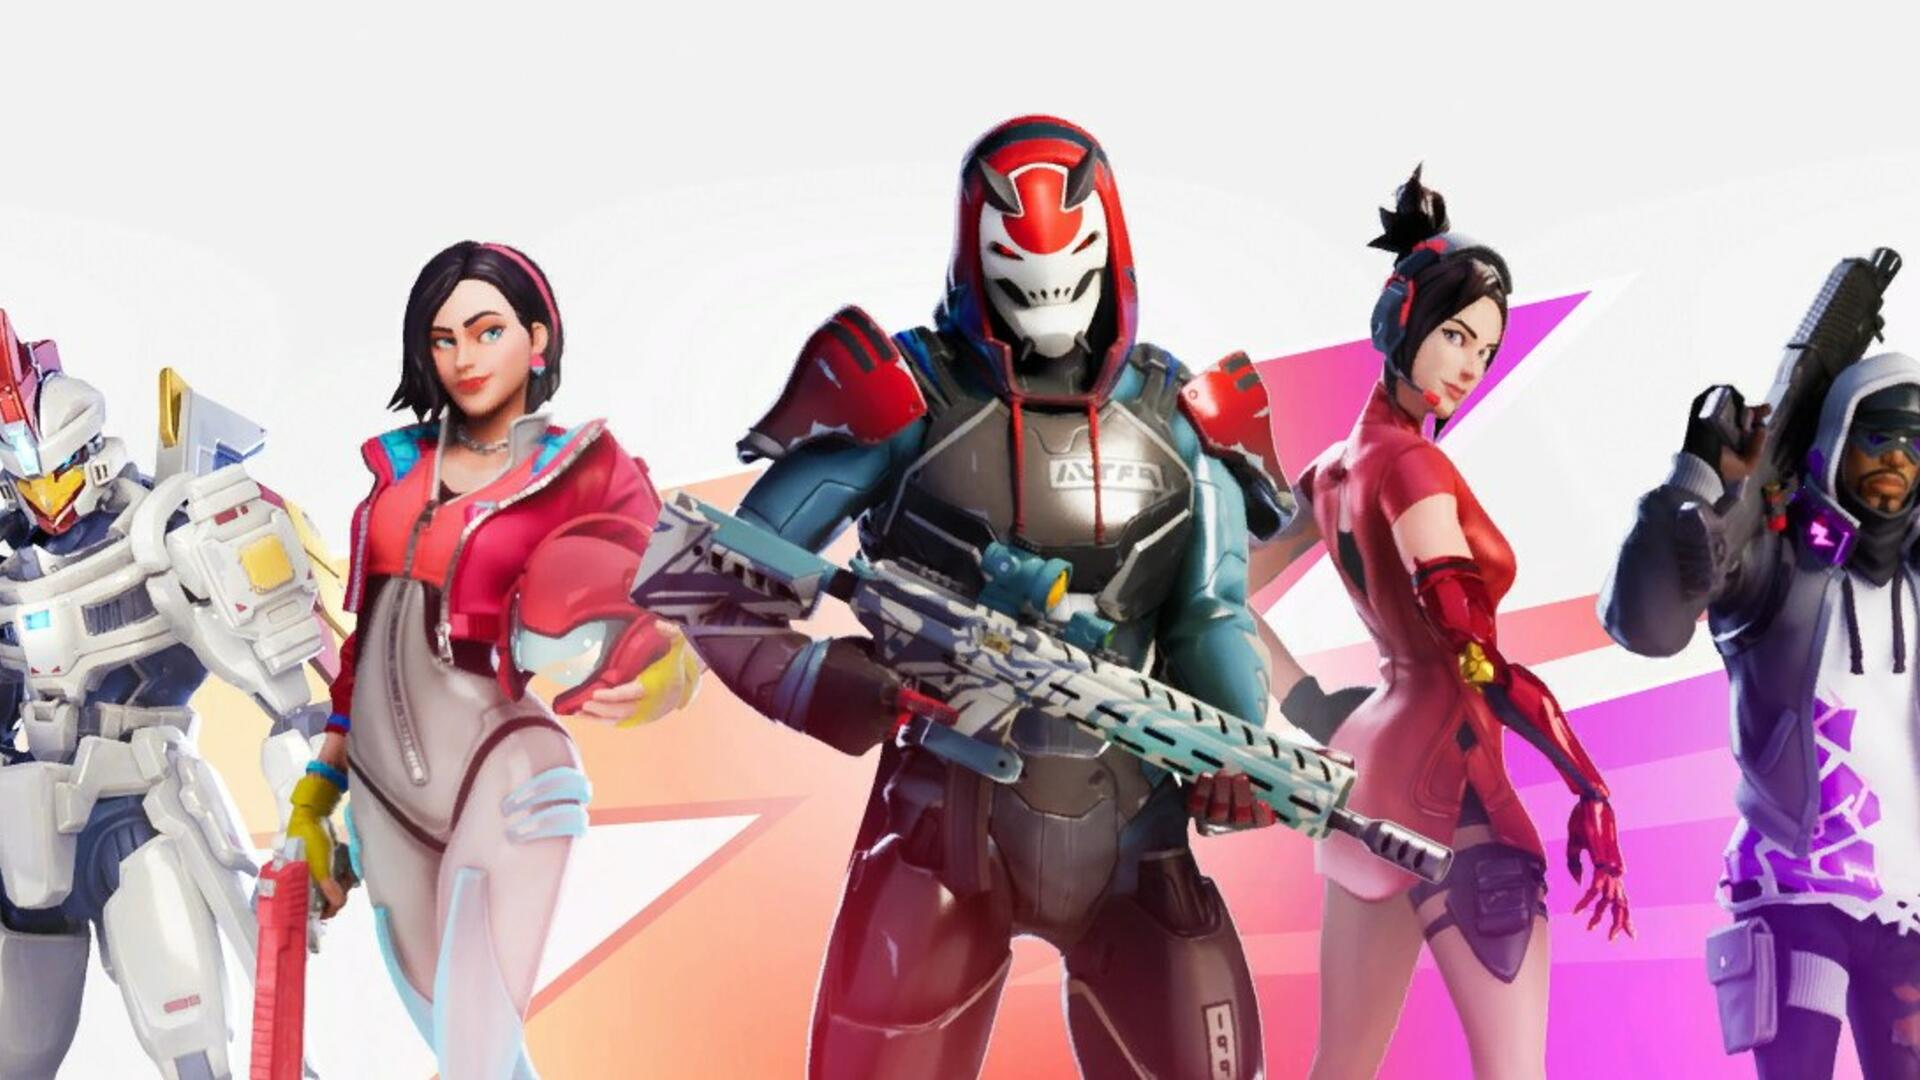 Fortnite Season 9 Update, New Battle Pass, All Season 9 Skins - Everything we Know